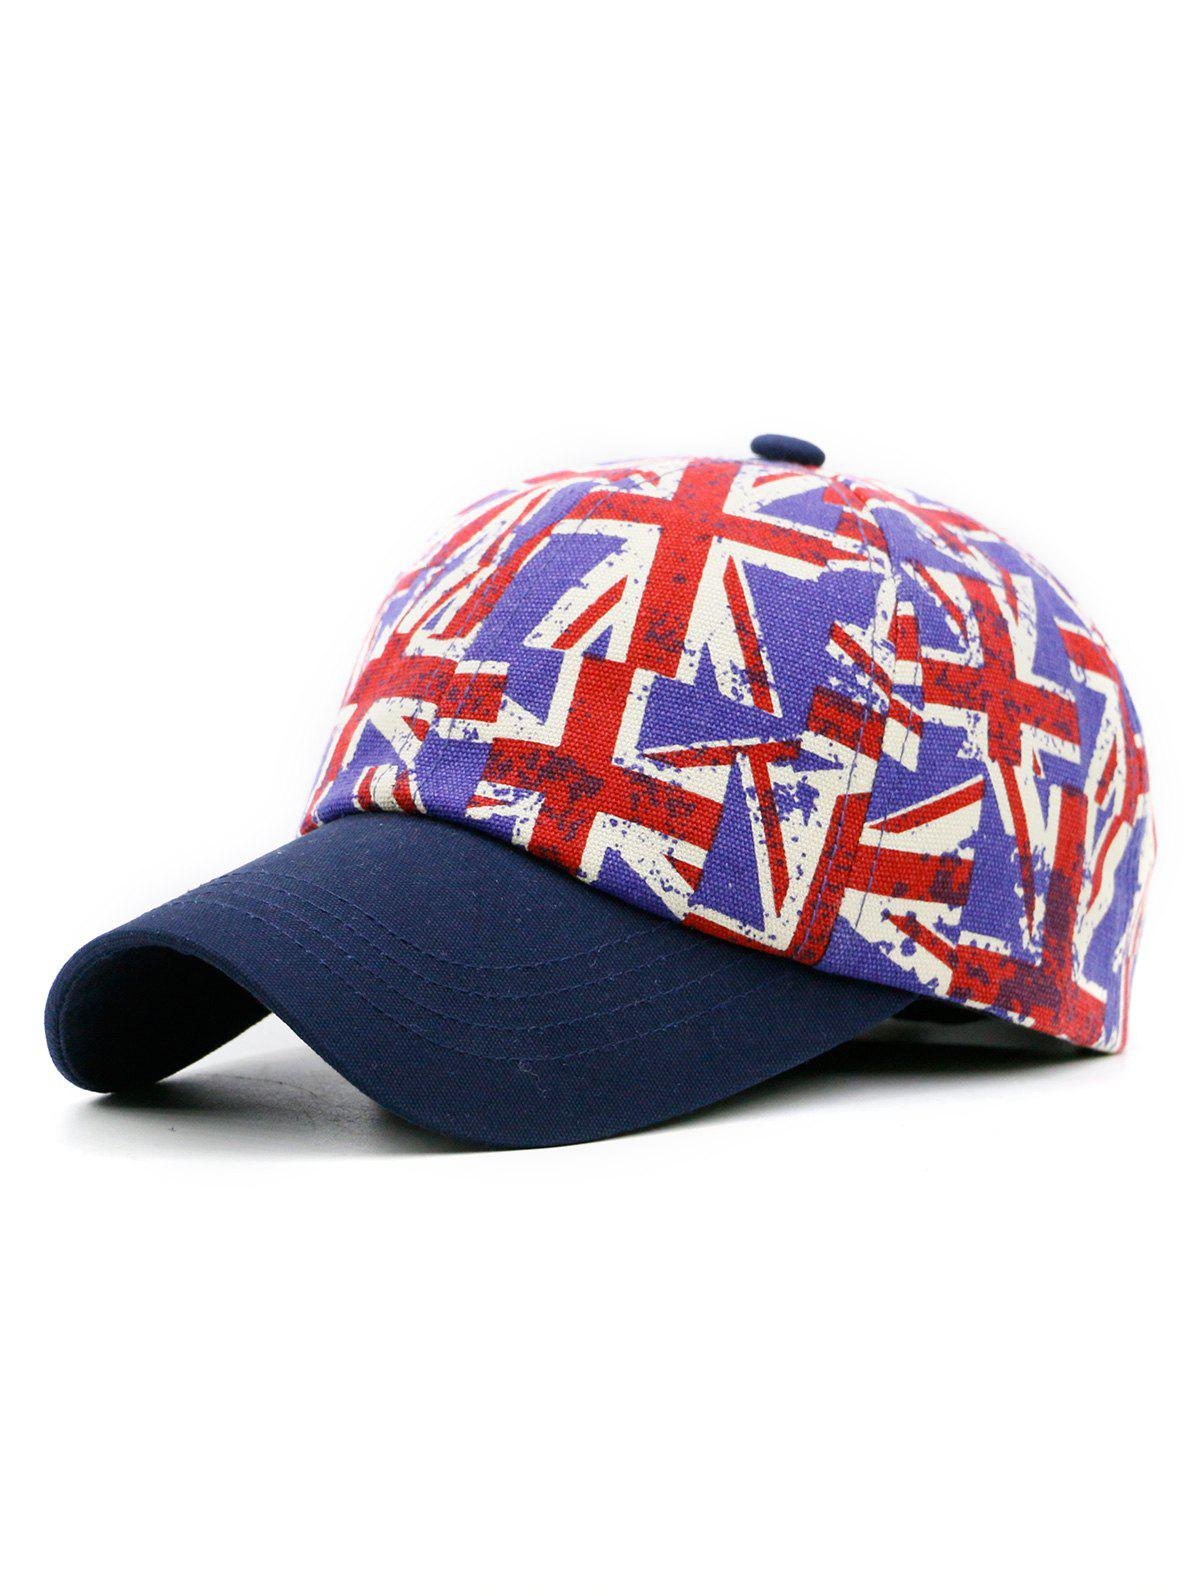 Shop Jack Flag Pattern Adjustable Snapback Hat